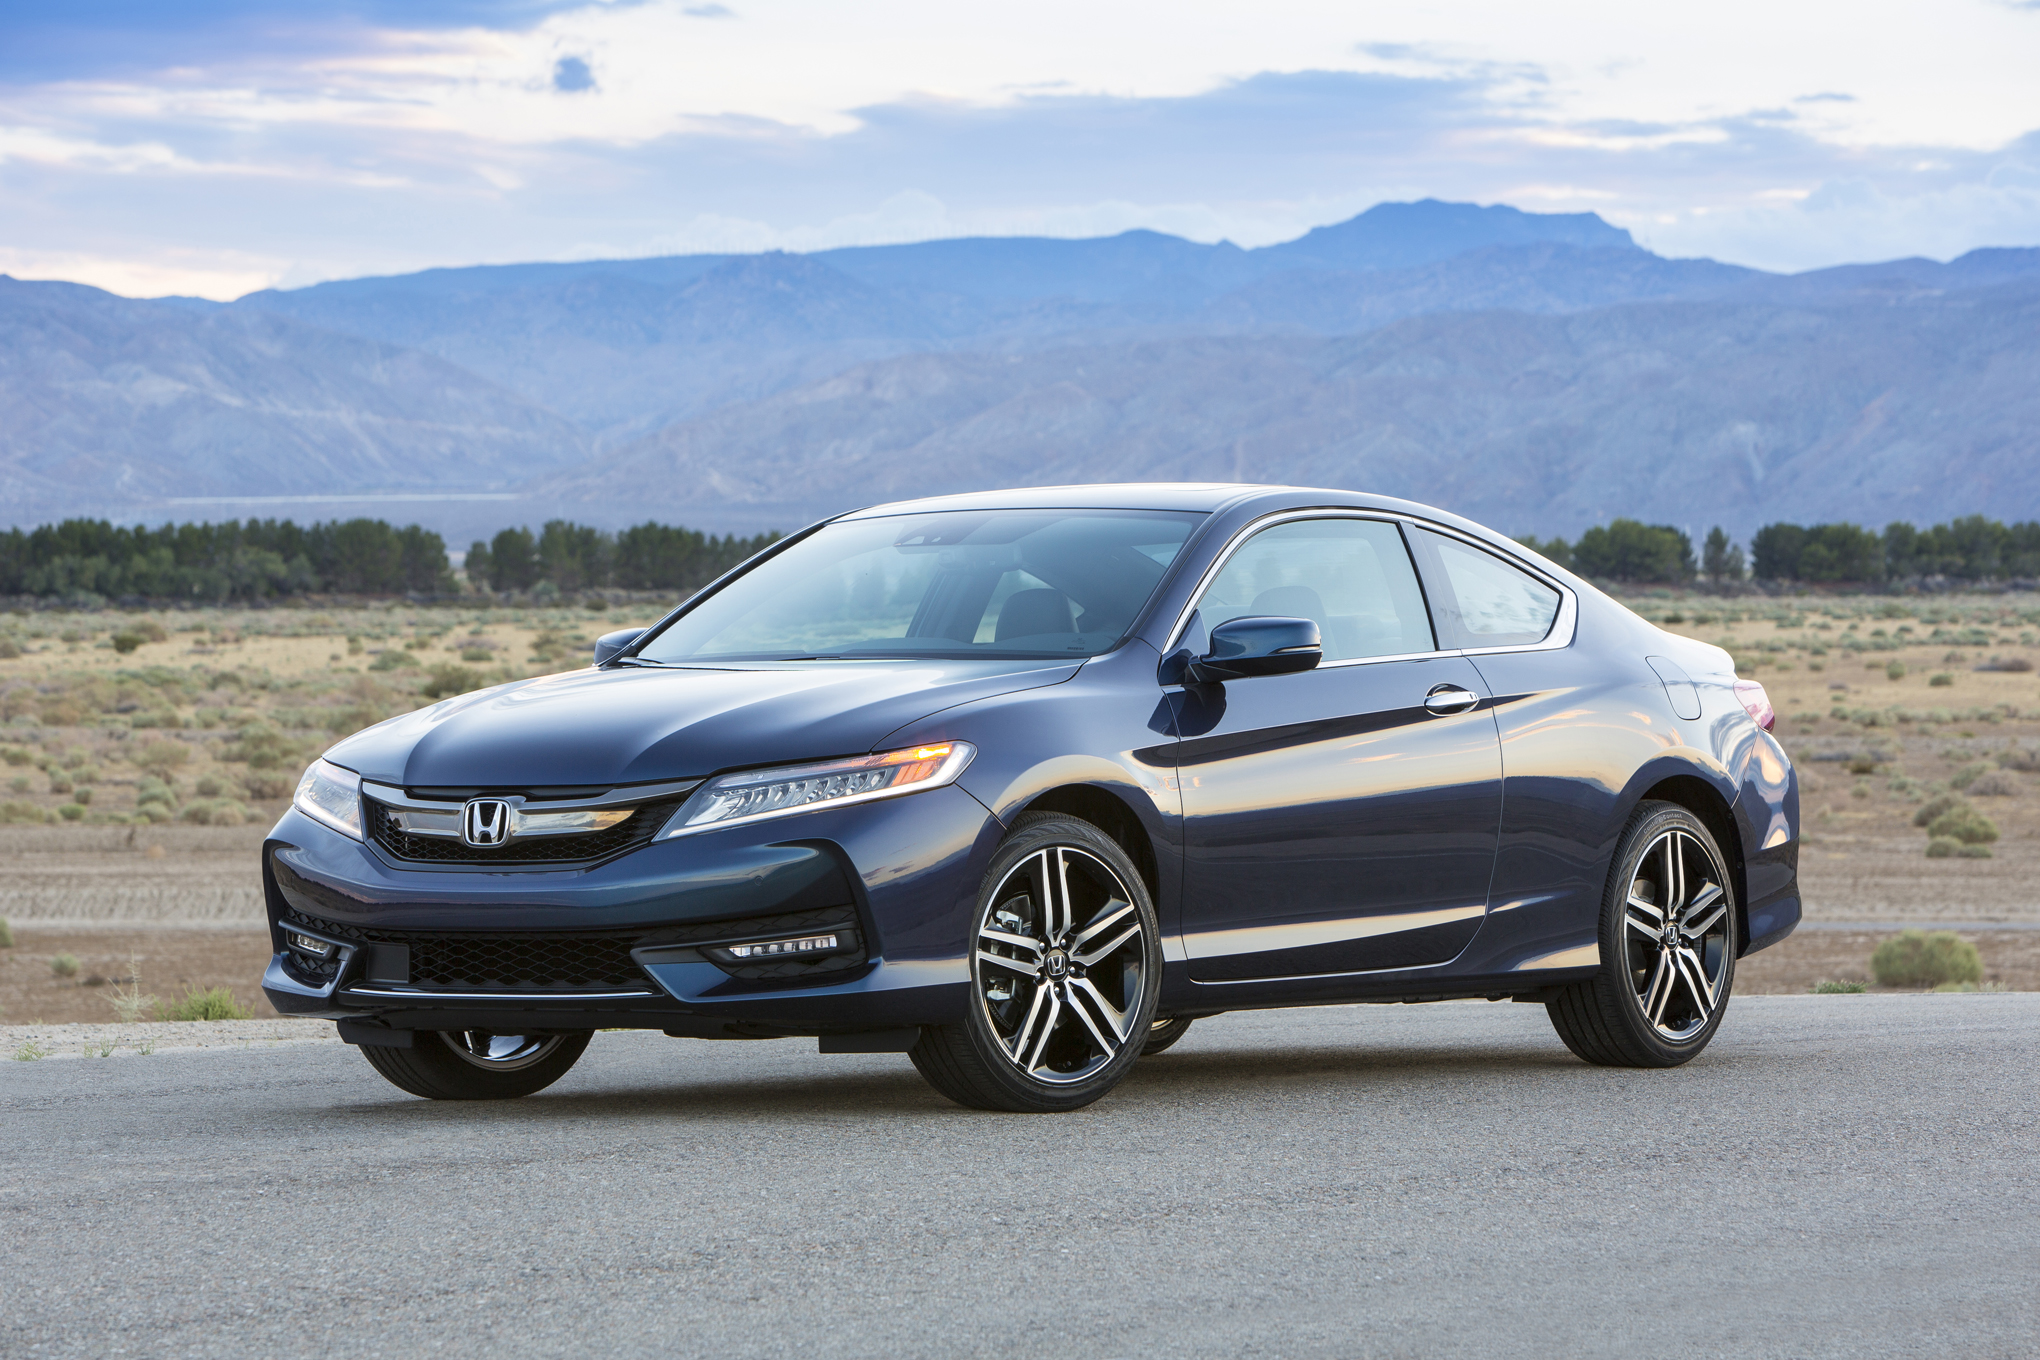 Accord Coupe Vs. Mustang: 5 Reasons To Go Honda And 5 More To Get The Ford    Motor Trend